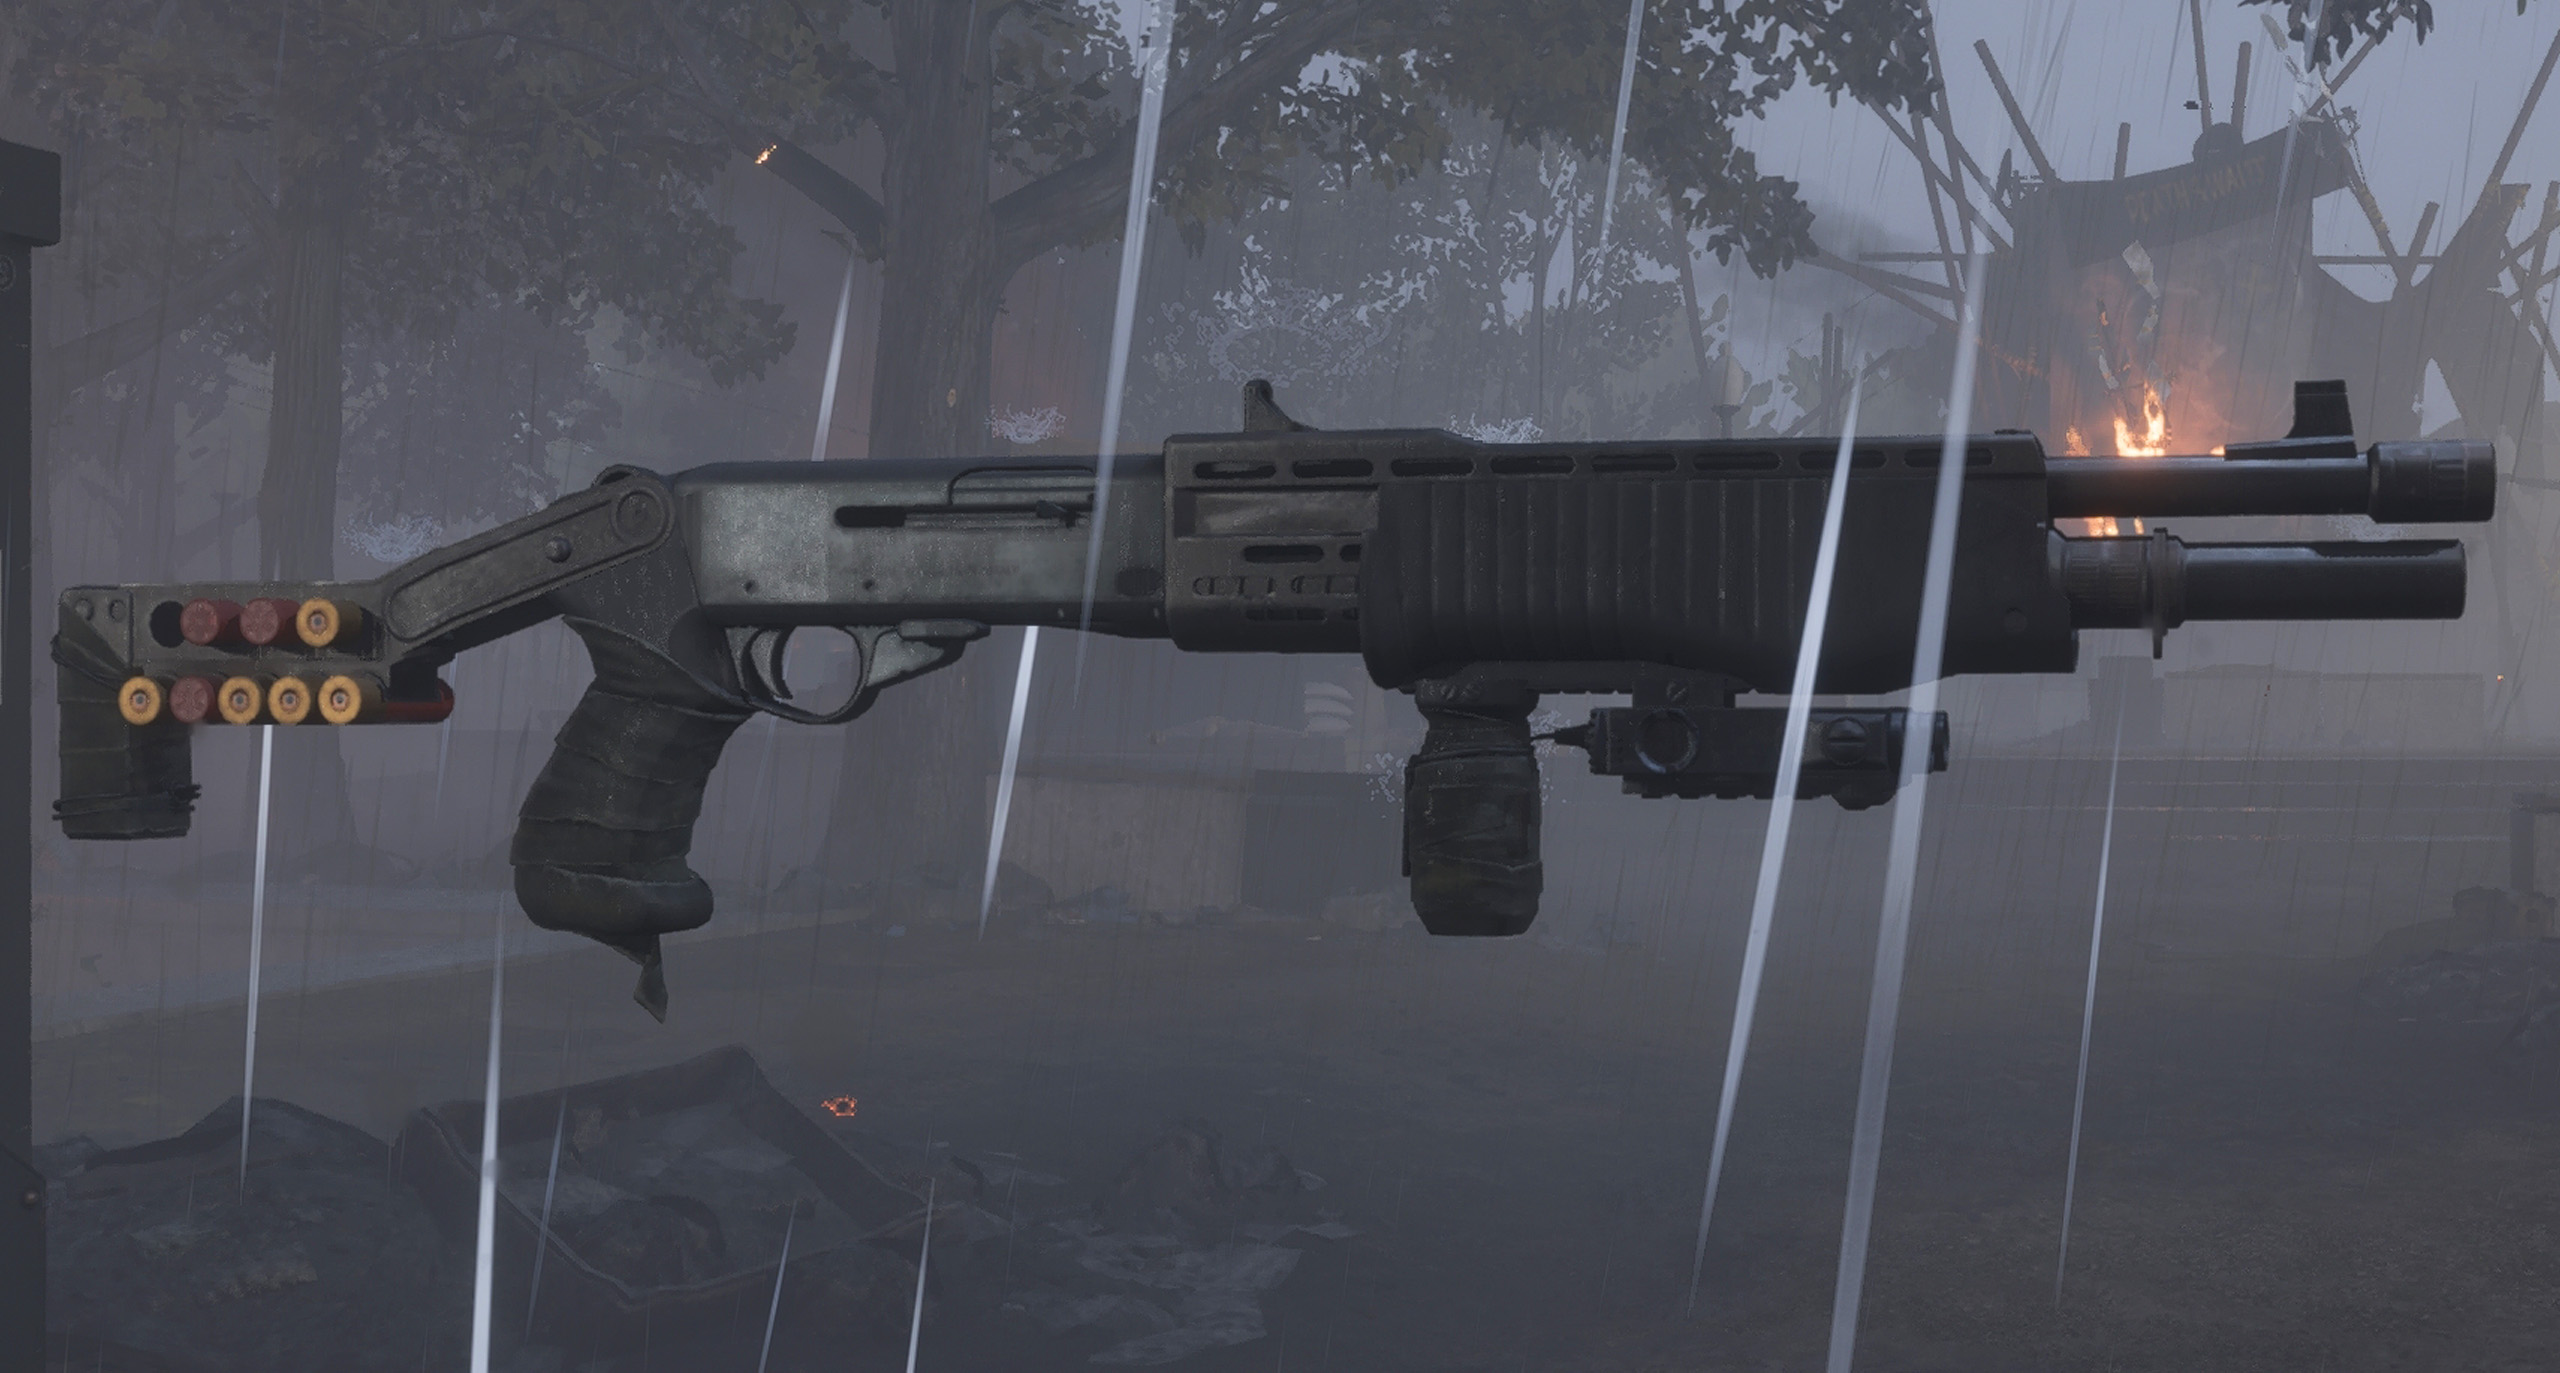 Division 2 Sweet Dreams guide: How to get the Exotic Shotgun